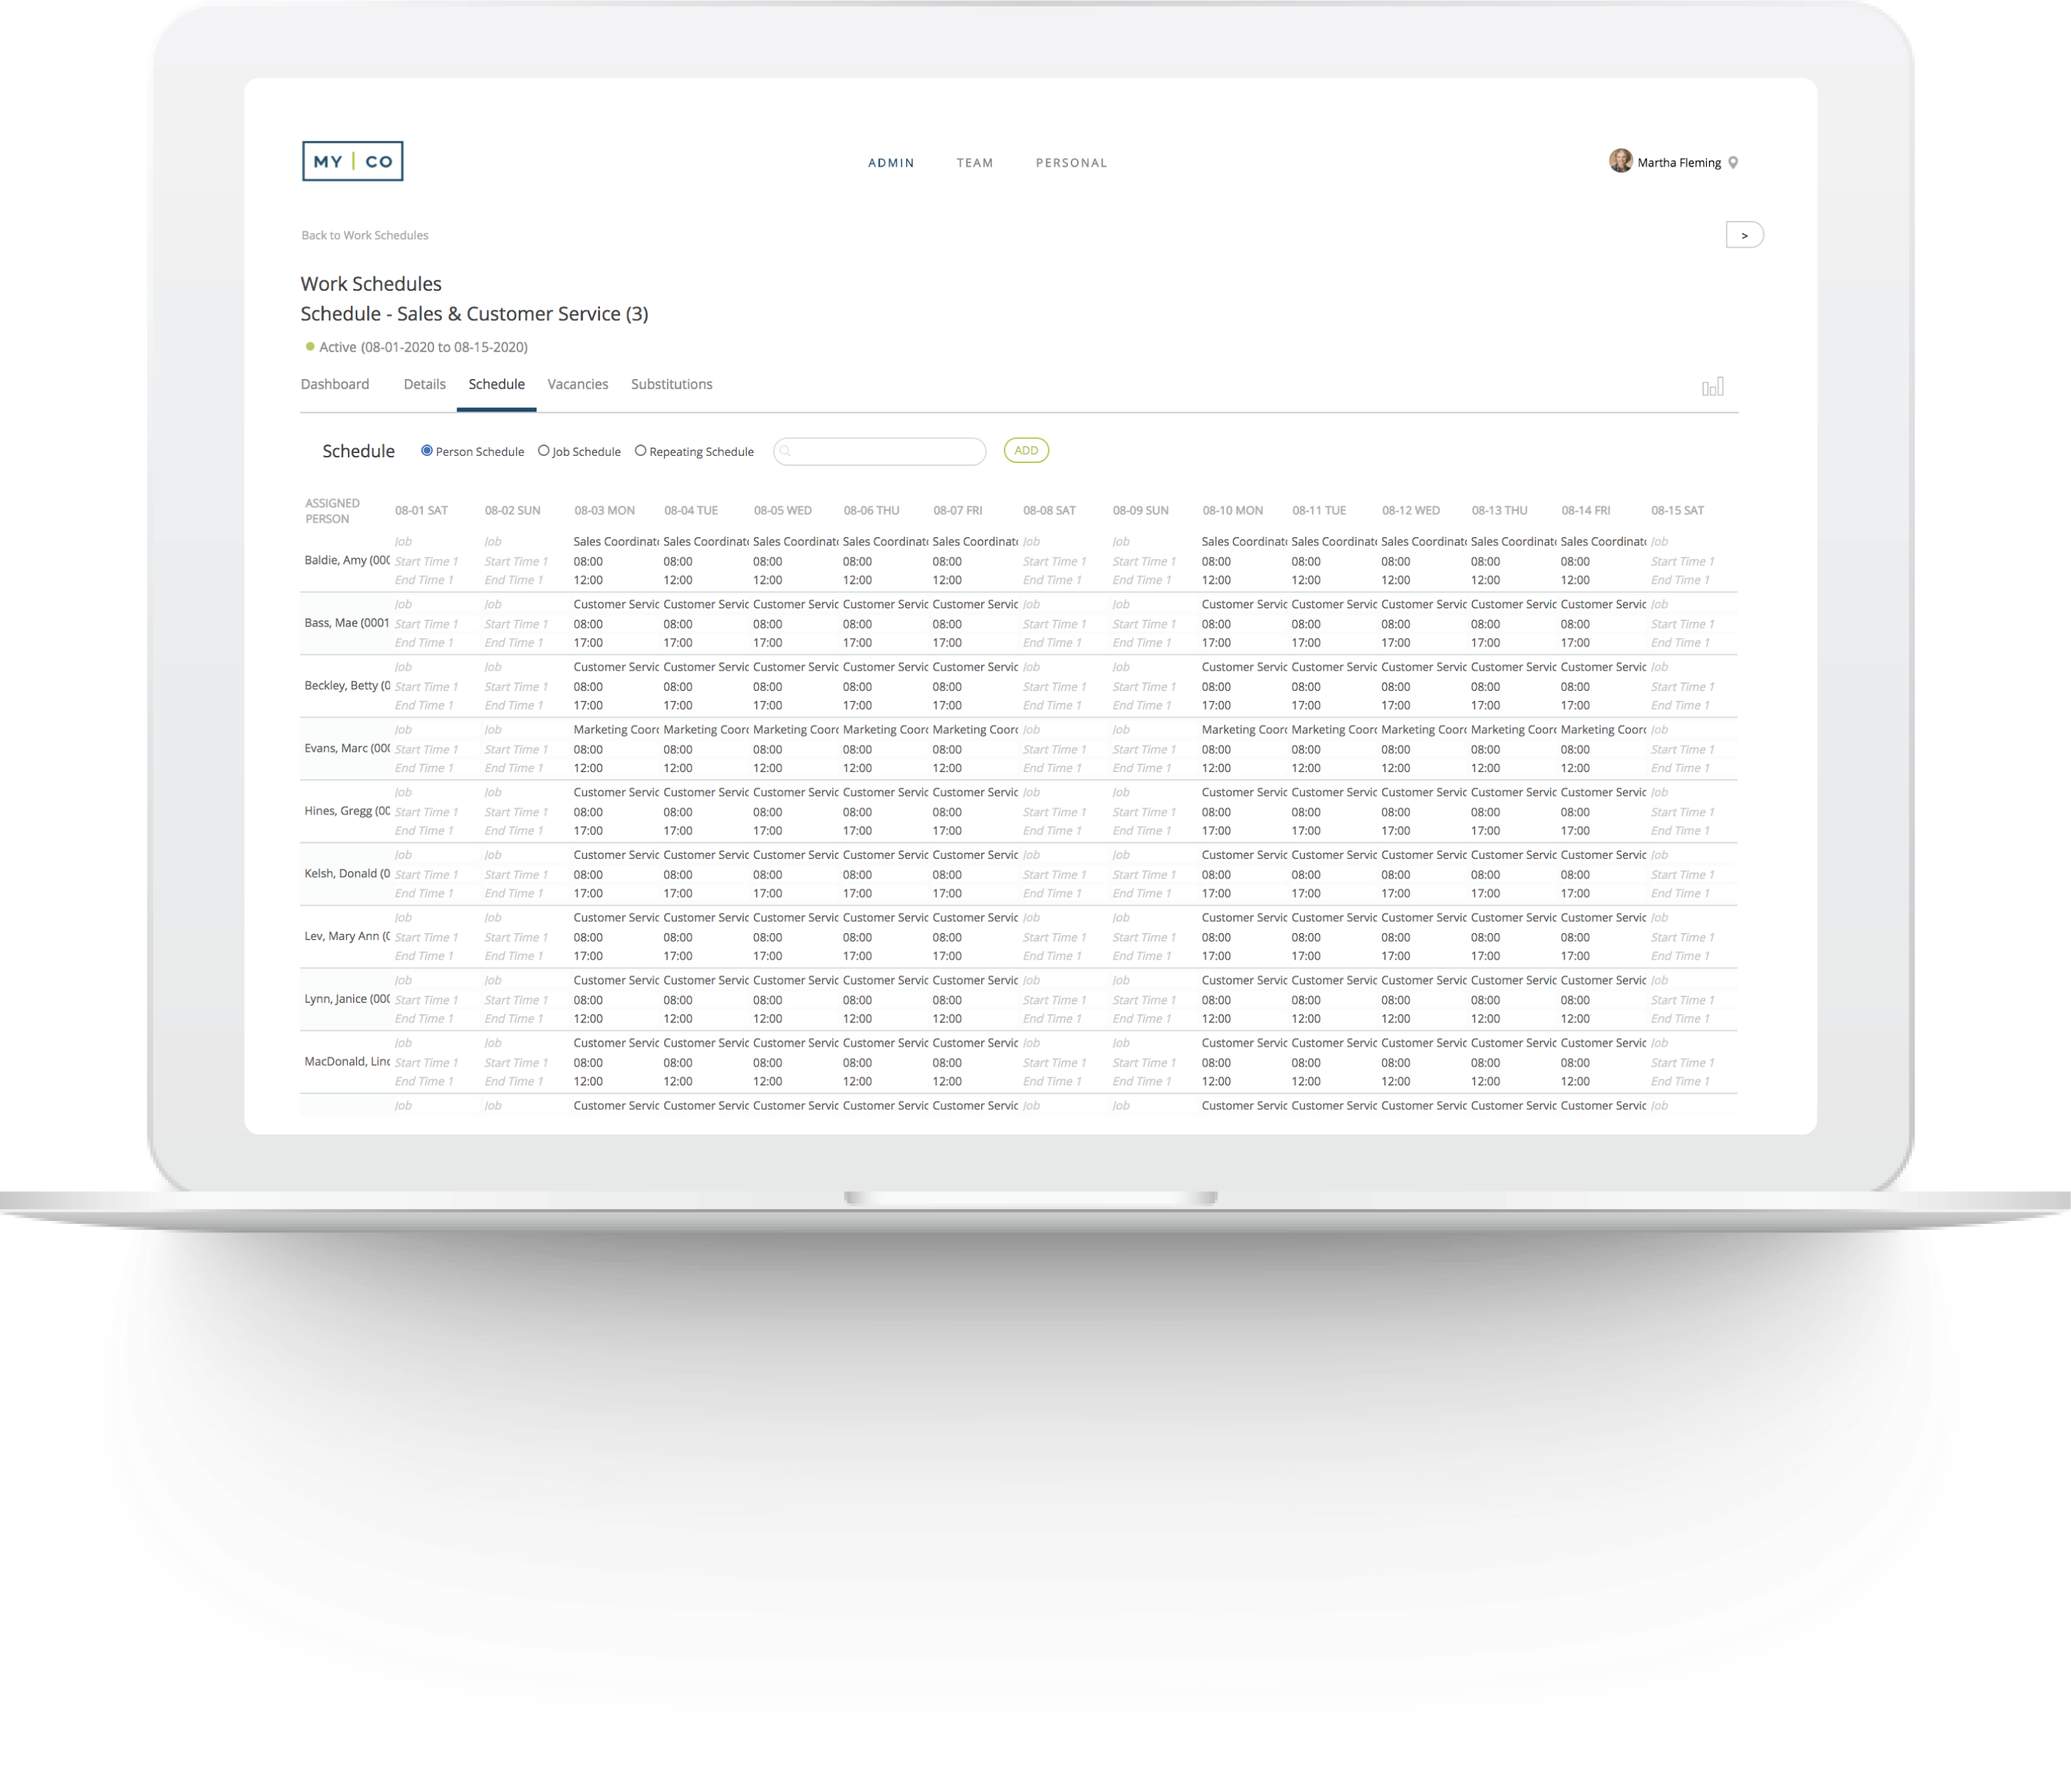 Easily manage all types of schedules